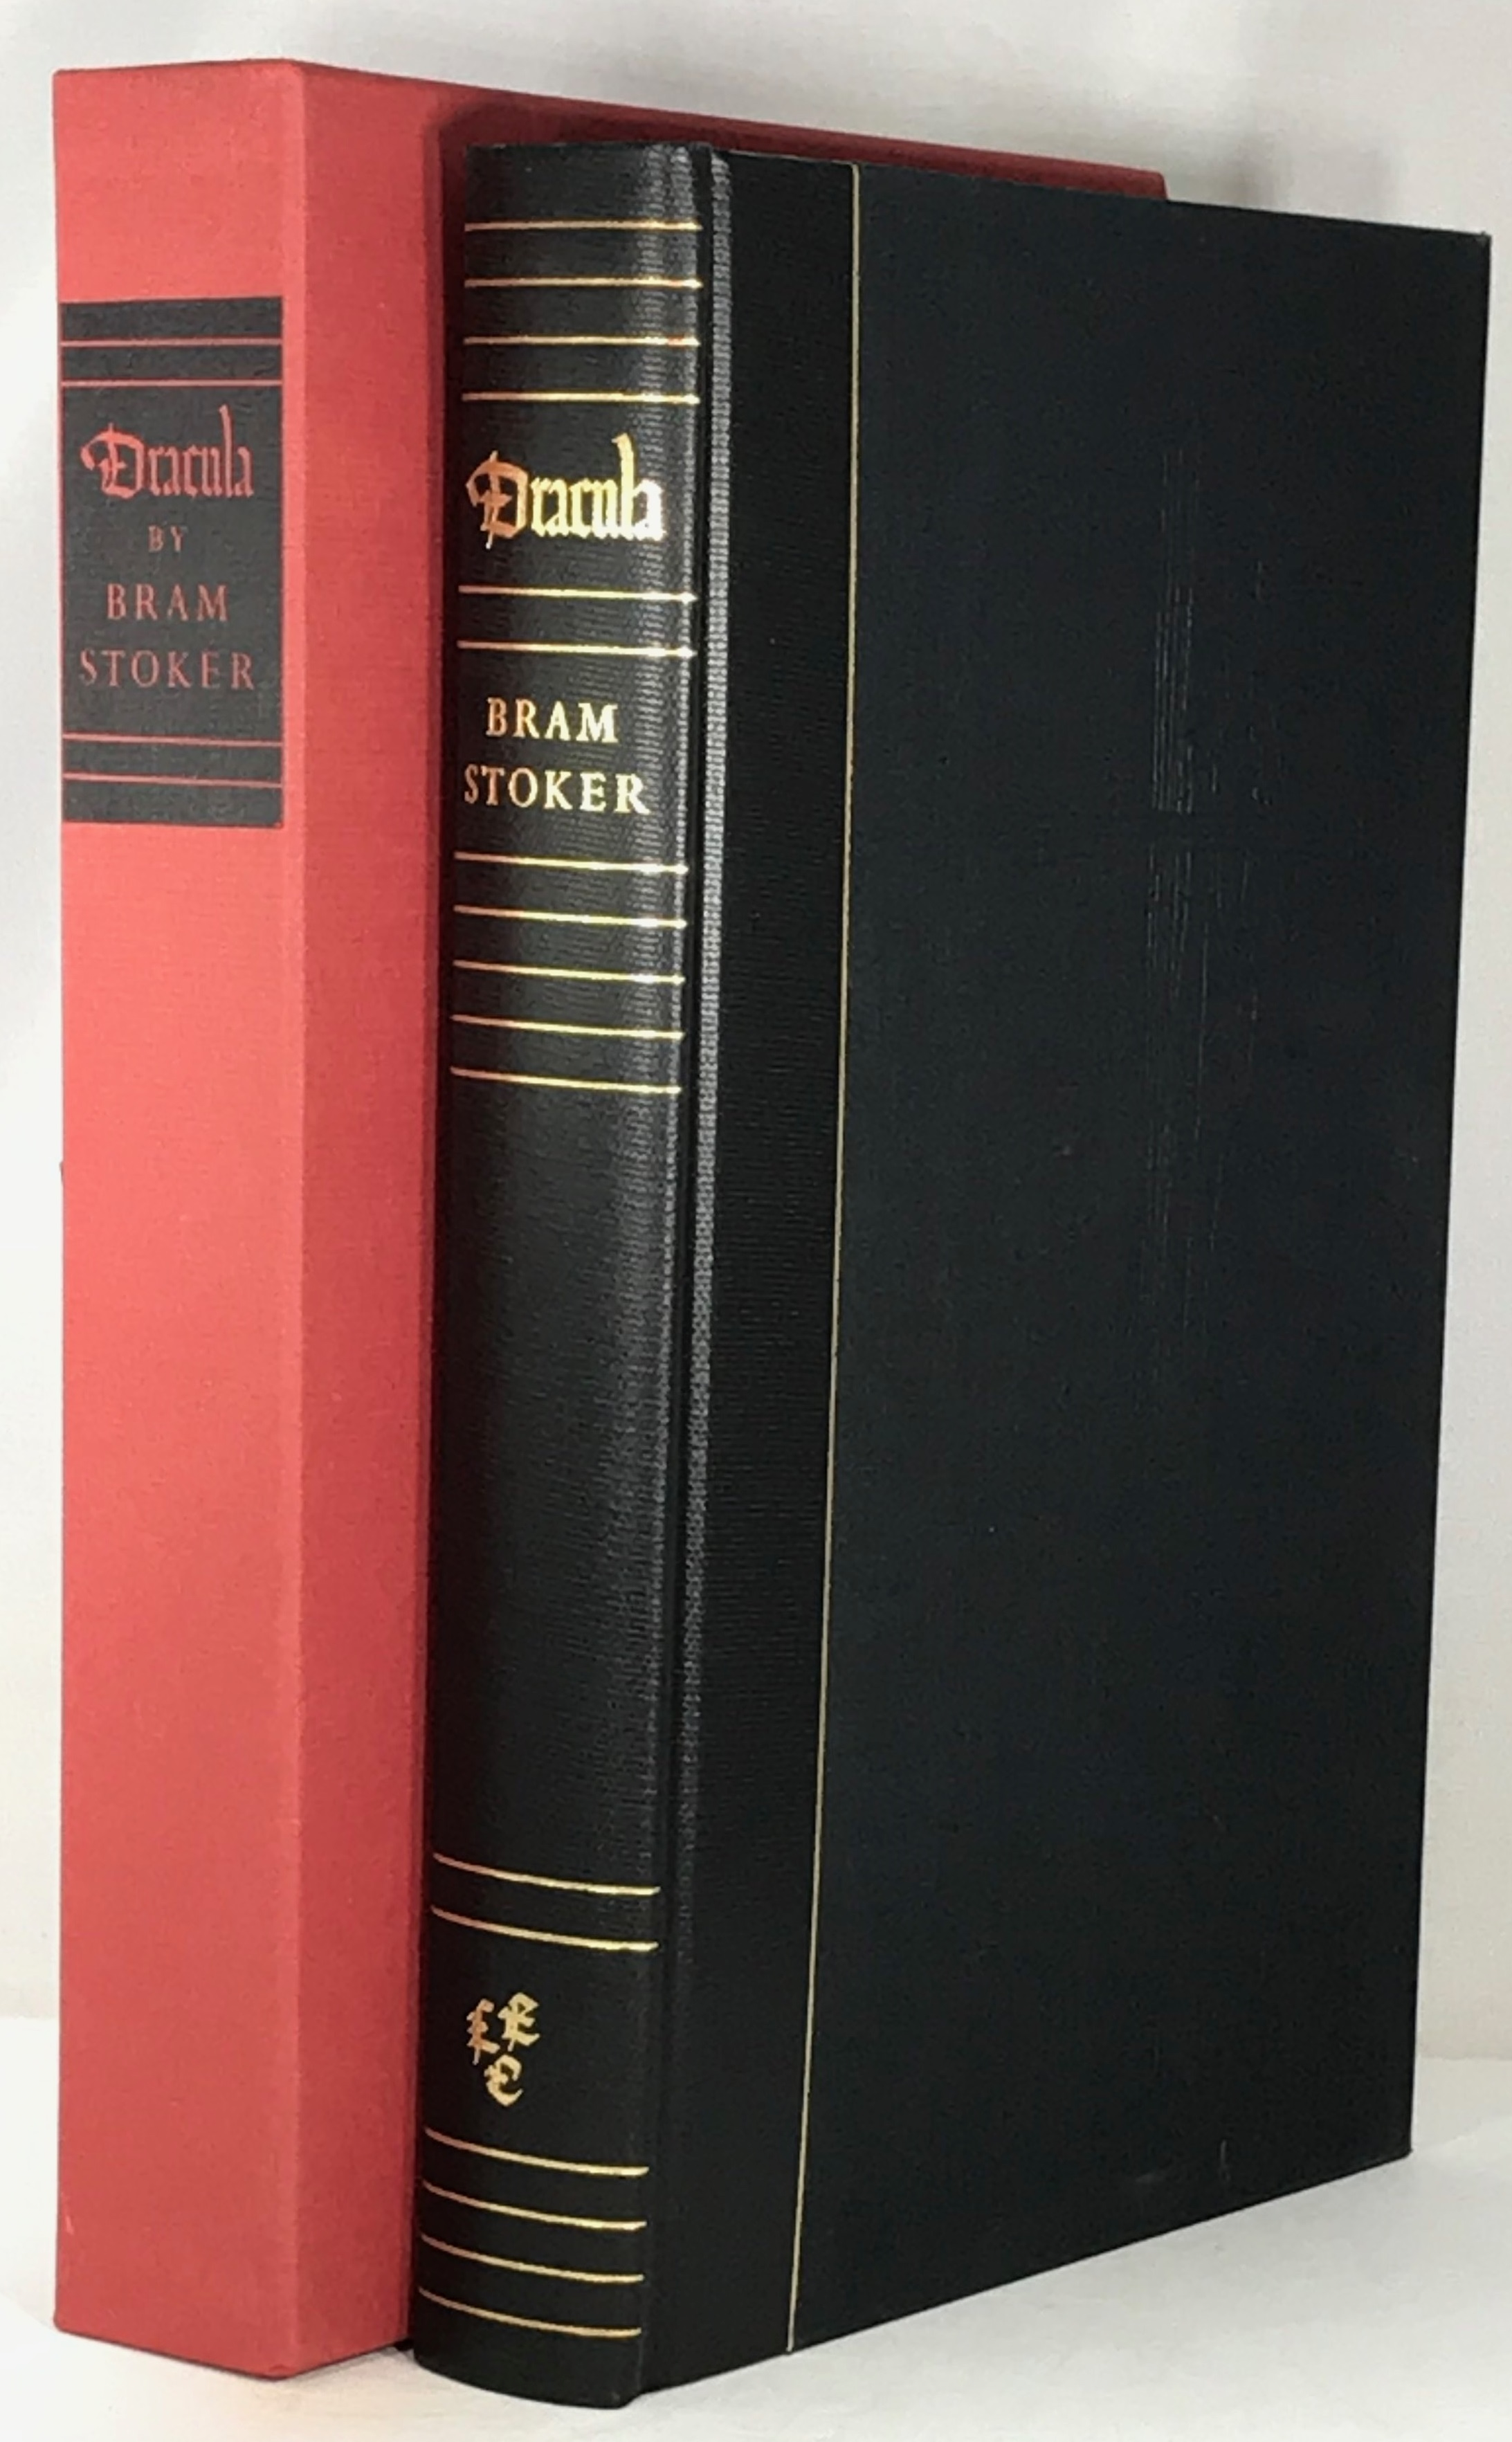 Offered by Brenner's Collectable Books